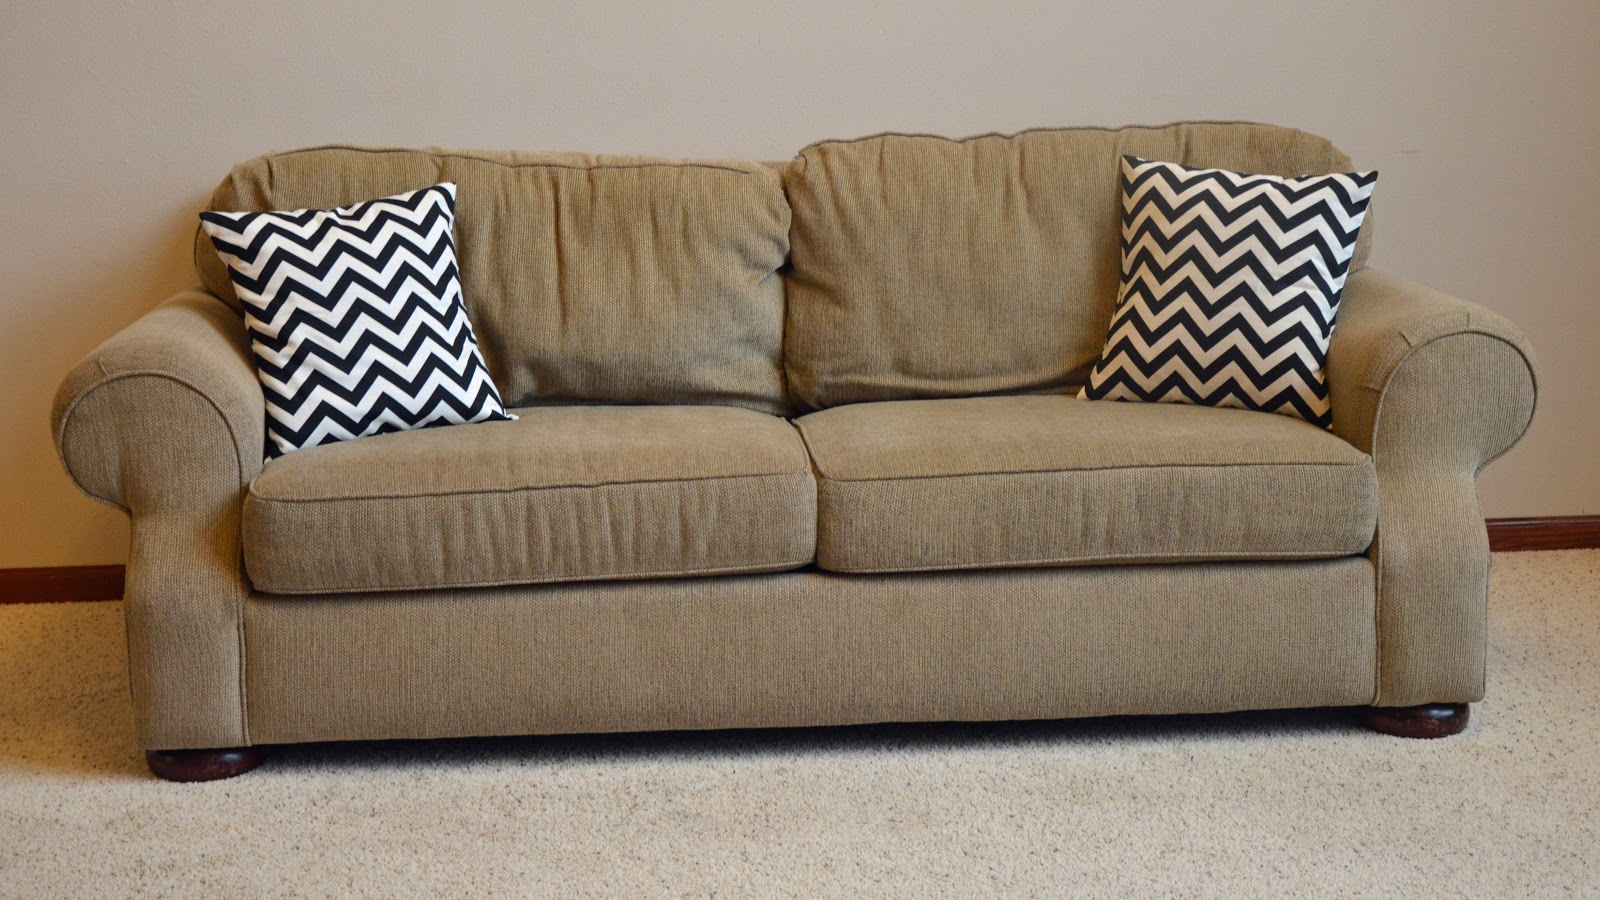 Decorative Pillows For Sofa Corner Design On Grey Couch